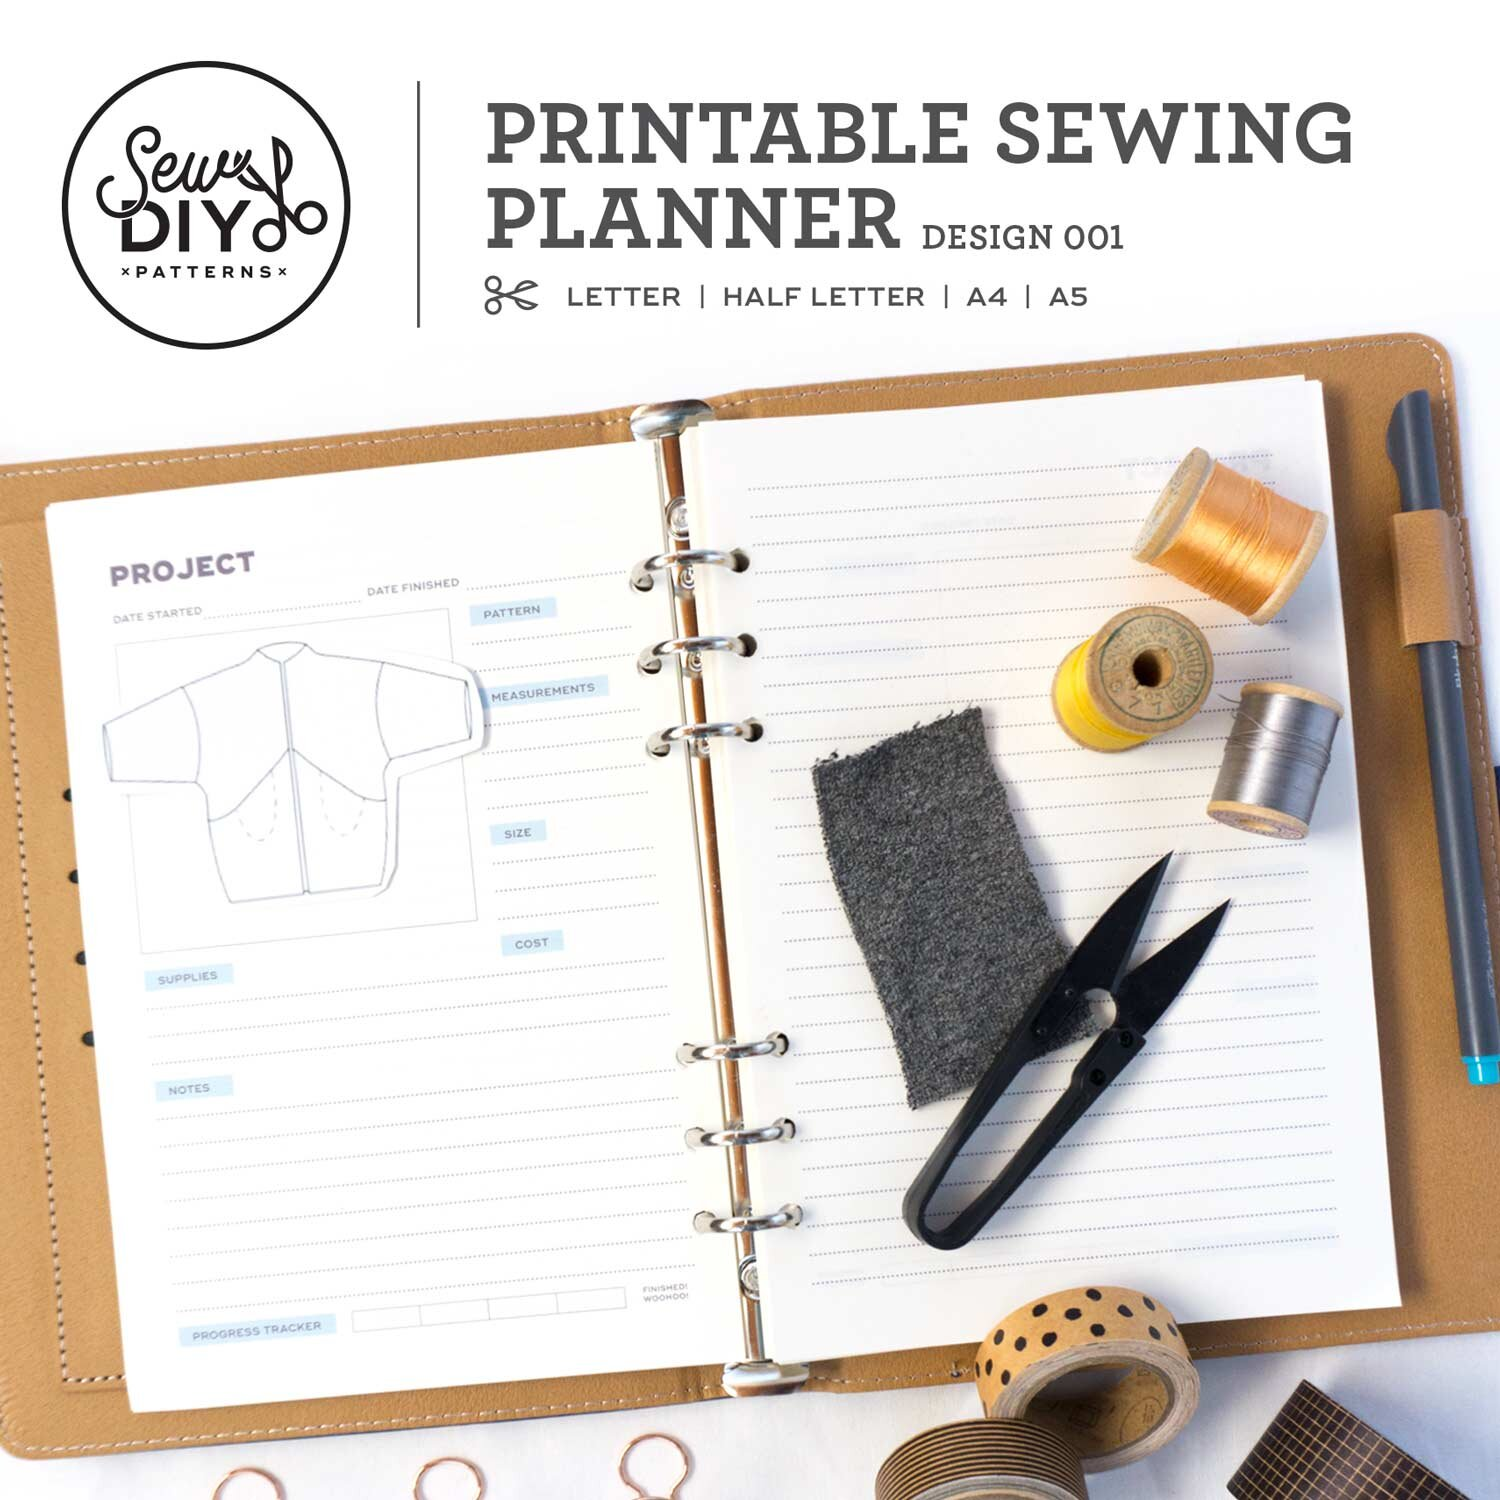 image regarding Diy Planner Printables named Printable Sewing Planner PDF Down load Sew Do it yourself